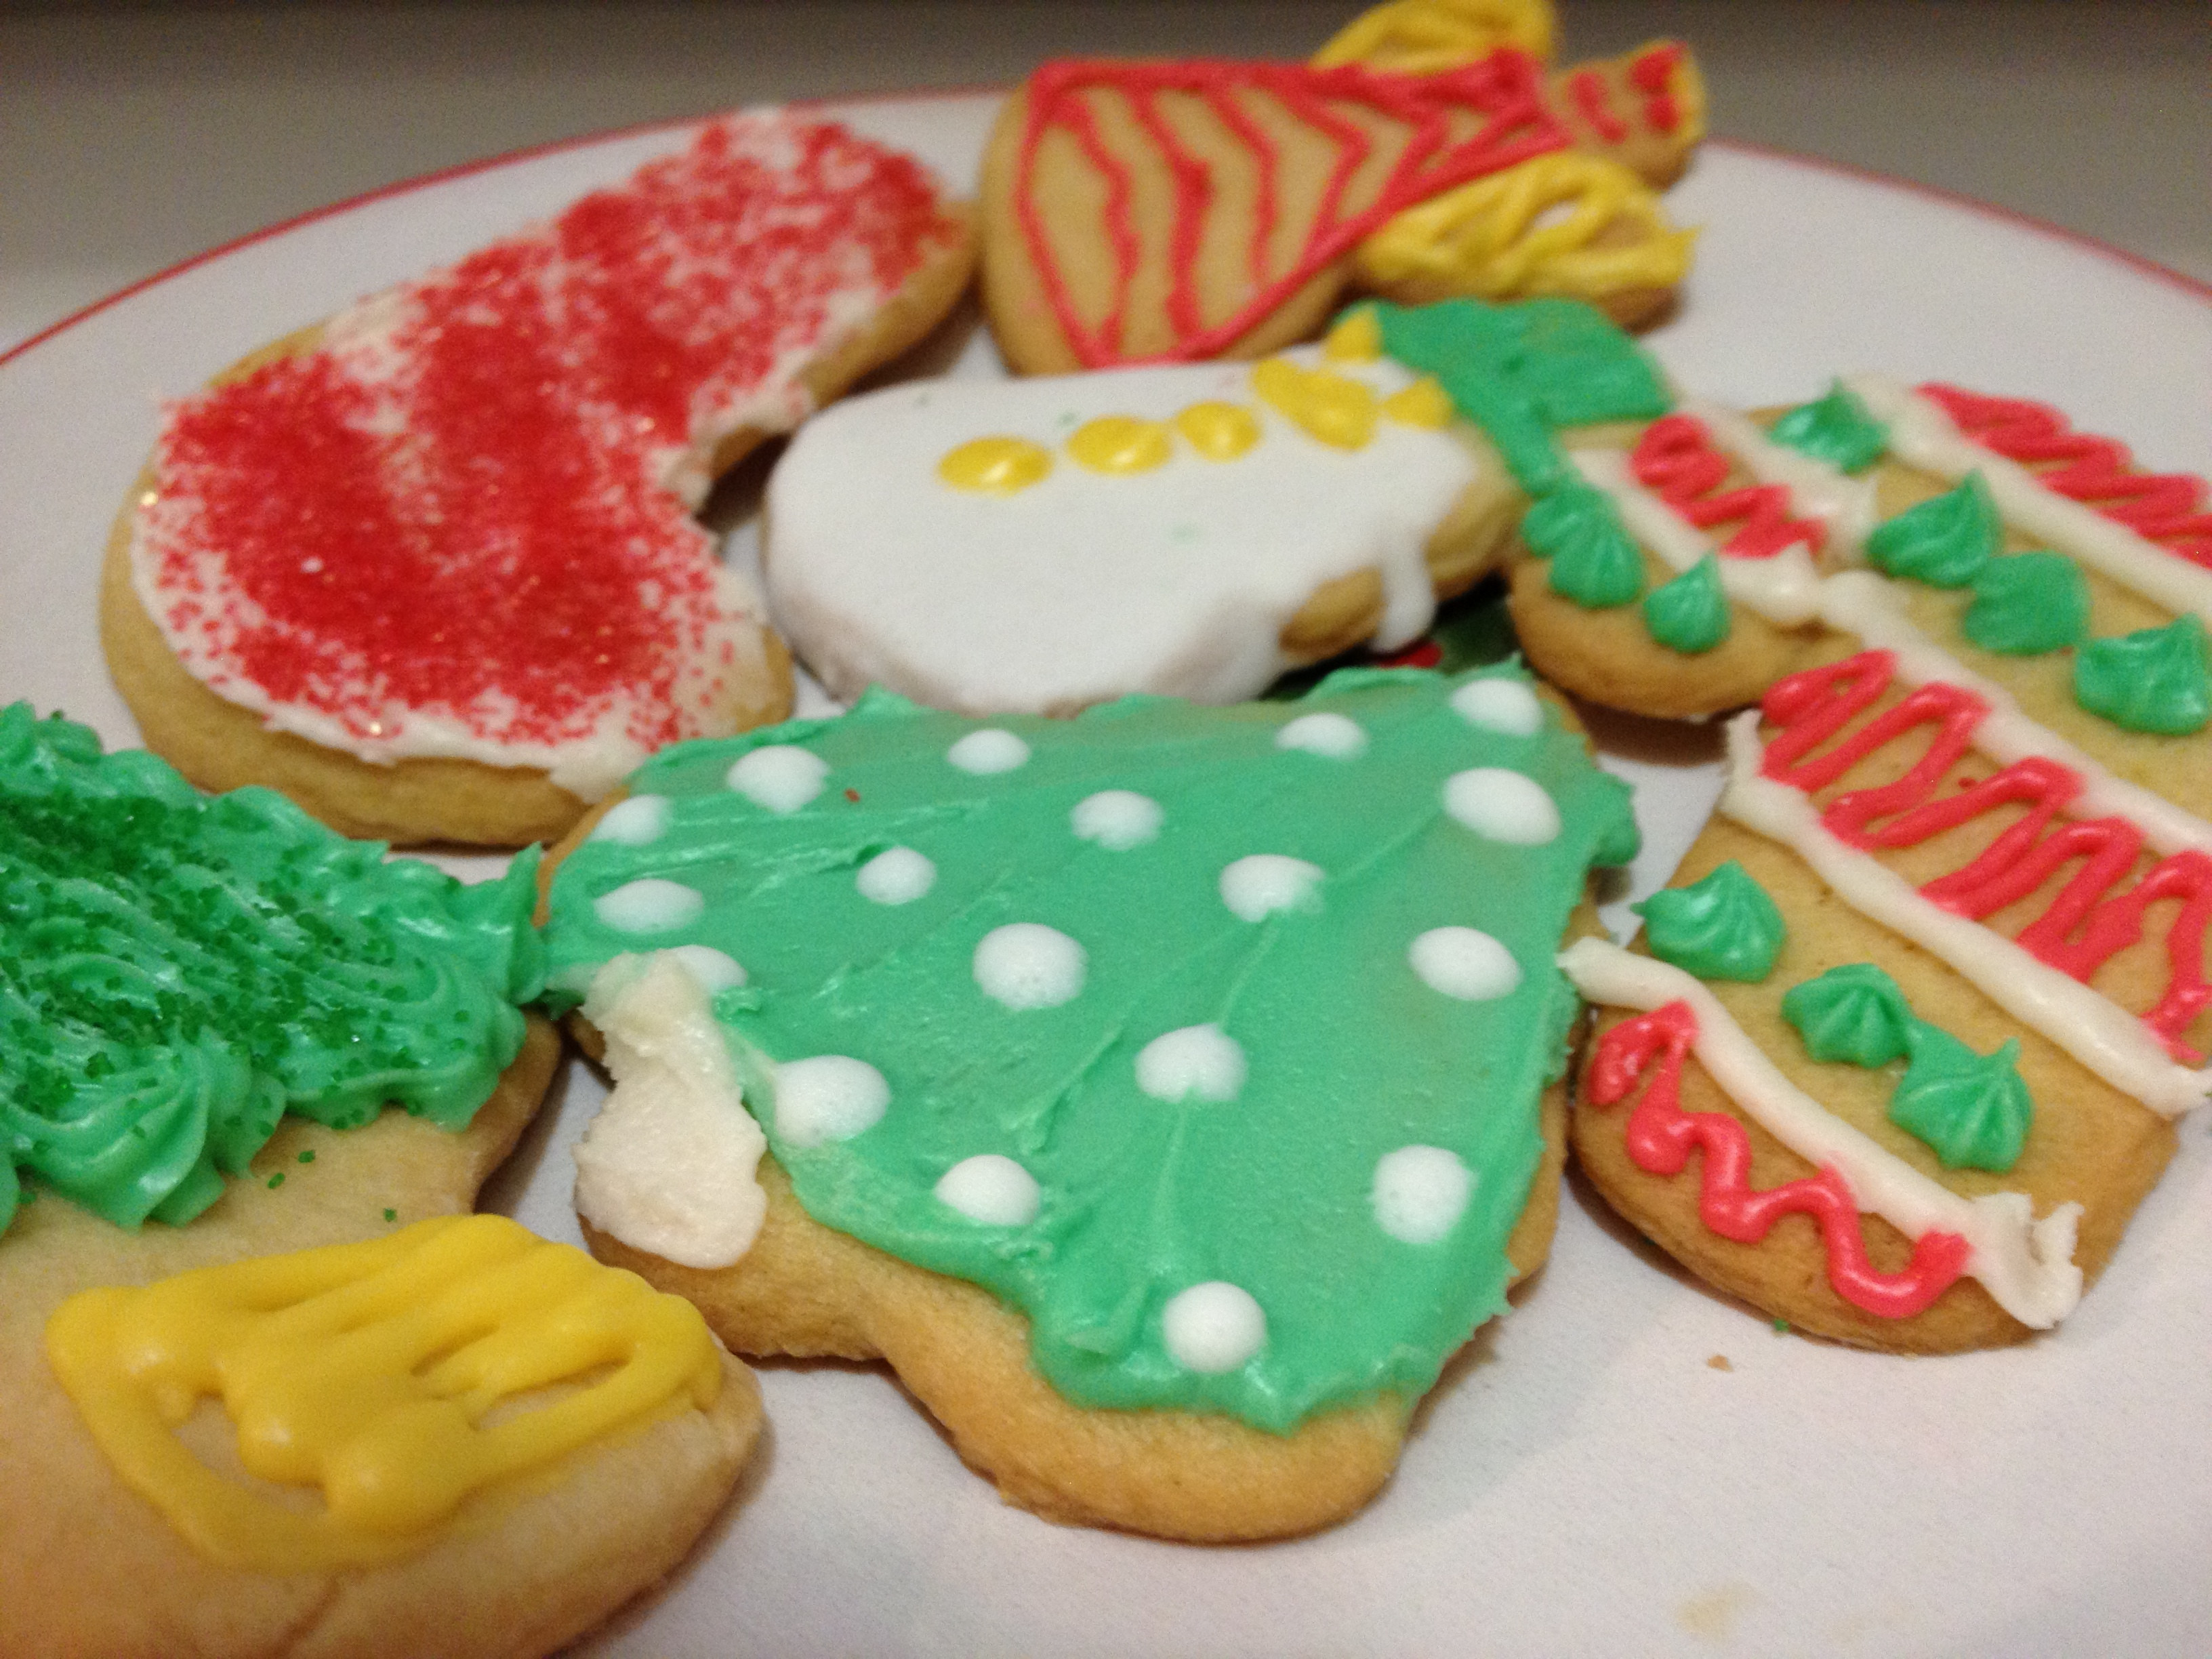 Best Icing For Sugar Cookies  Best Ever Sugar Cookies with Easy Creamy Icing